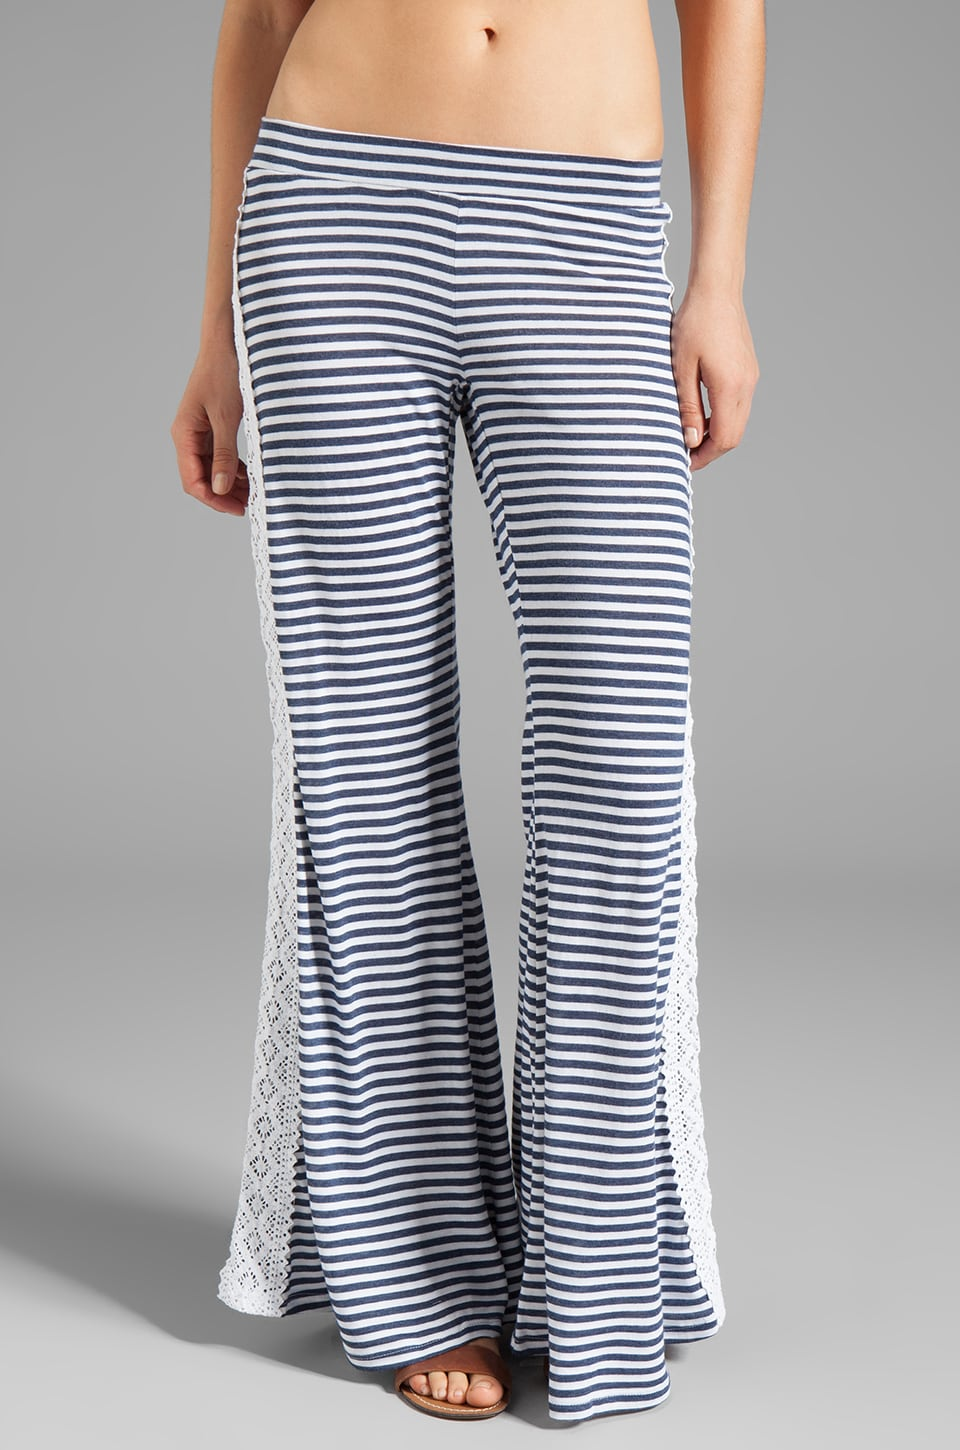 Blue Life Bell Bottom Pant in Heather Blue Stripe